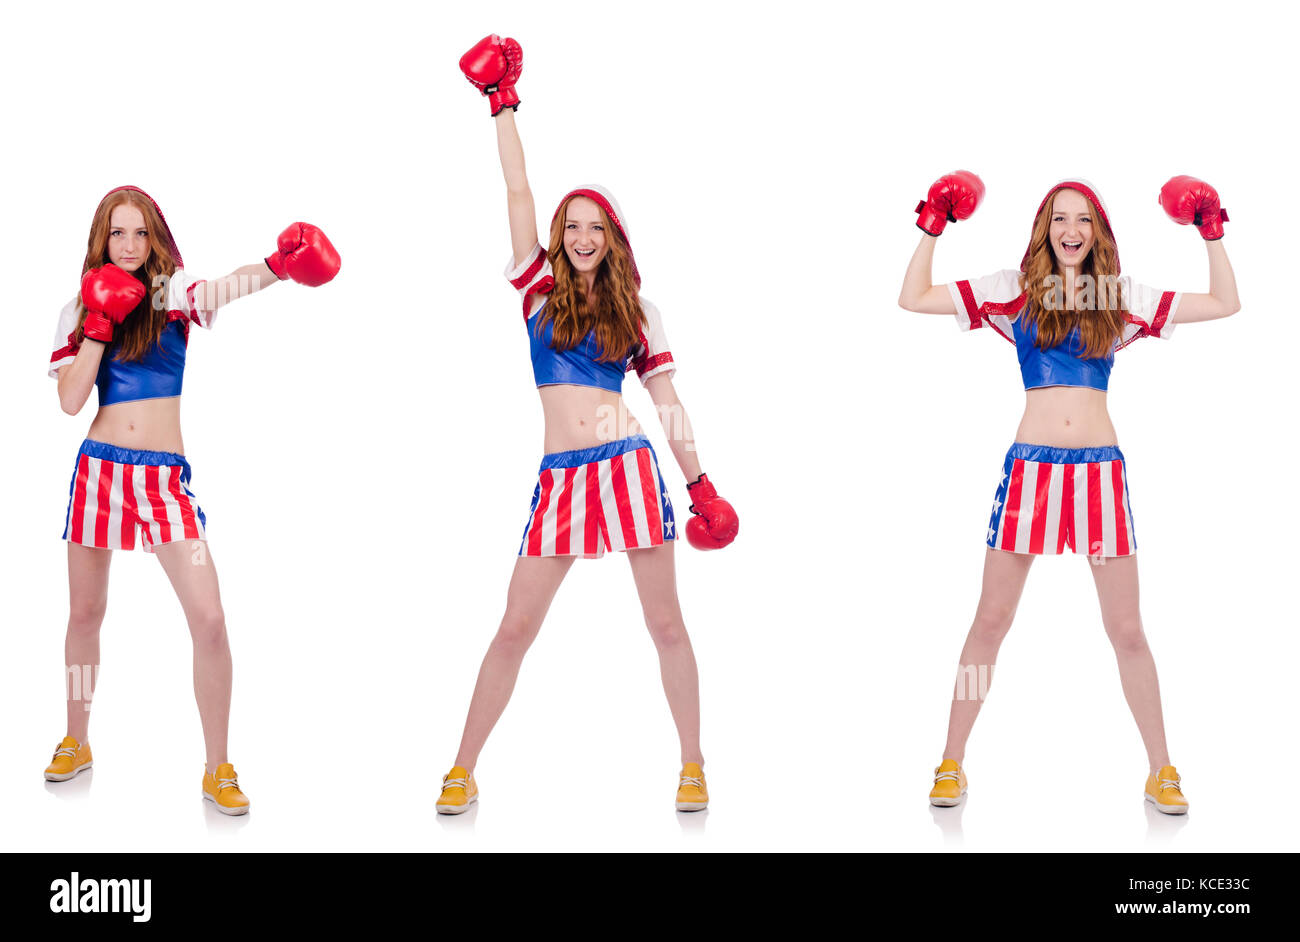 Woman Boxer In Uniform With Us Symbols Stock Photo 162578960 Alamy